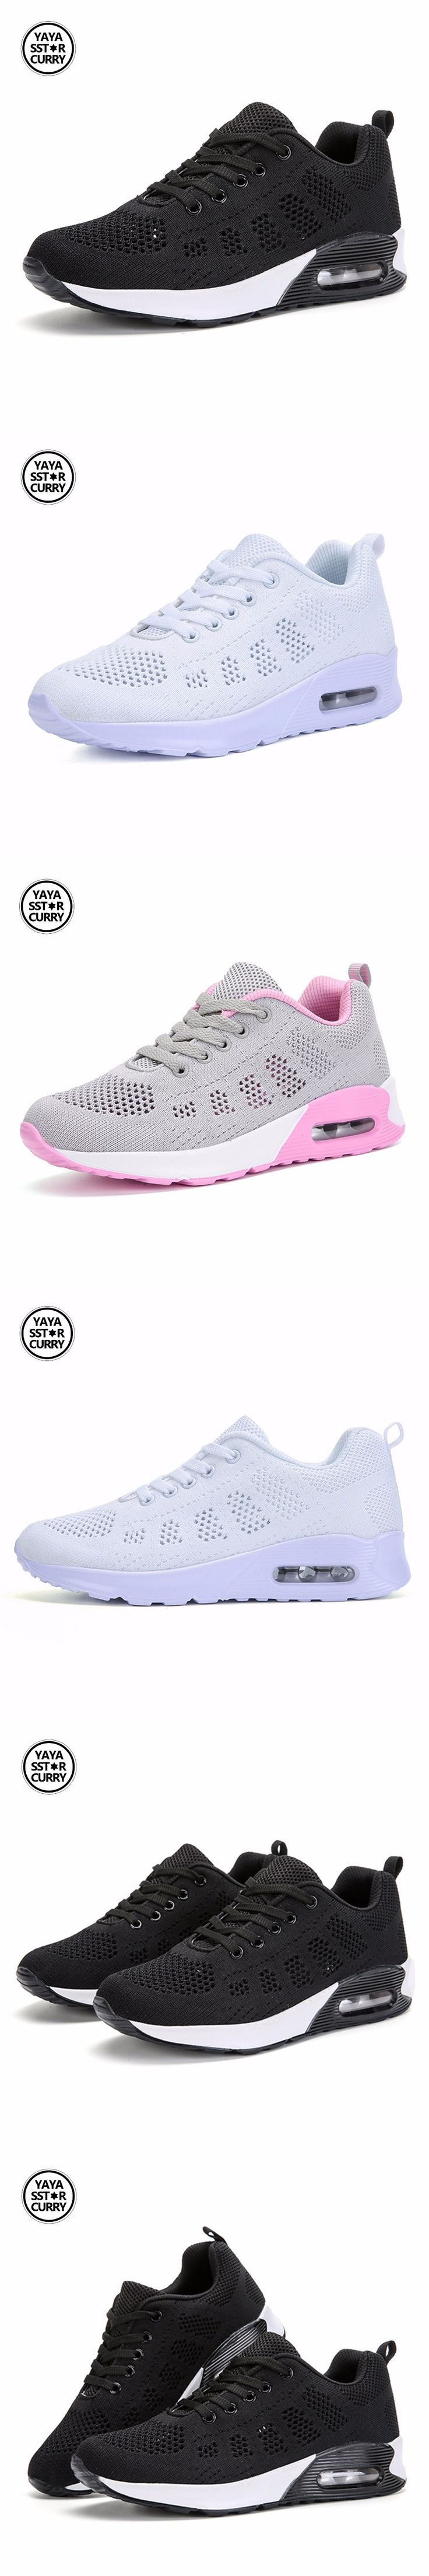 Brand air cushion running shoes for women 360 walking Sneaker Breathable Mesh Outdoor sneakers women zapatillas hombre deportiva